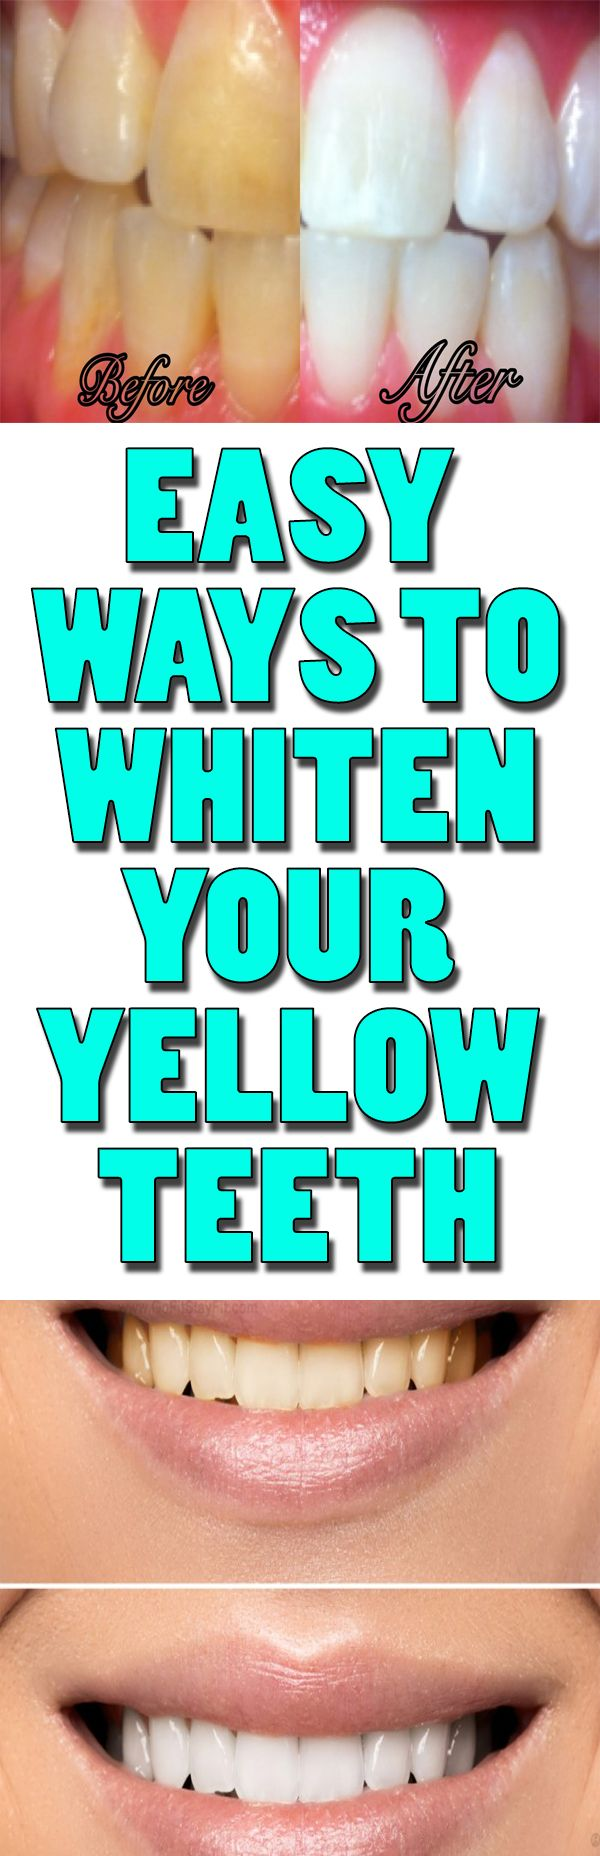 This is how to easily whiten your yellow teeth. Quick and effective ! Please REPIN this !